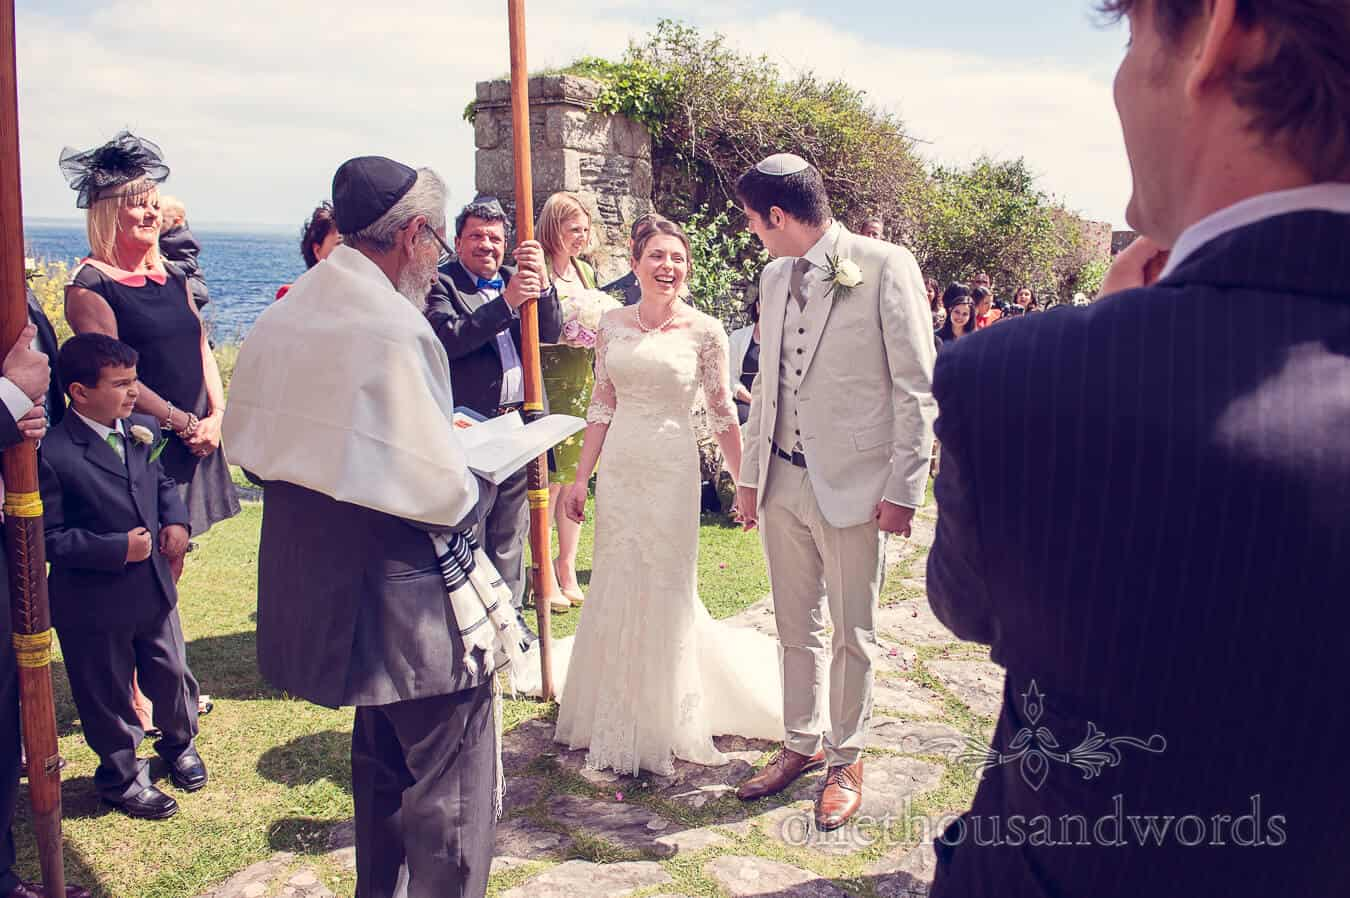 Jewish wedding ceremony by the sea at Prussia Cove Wedding